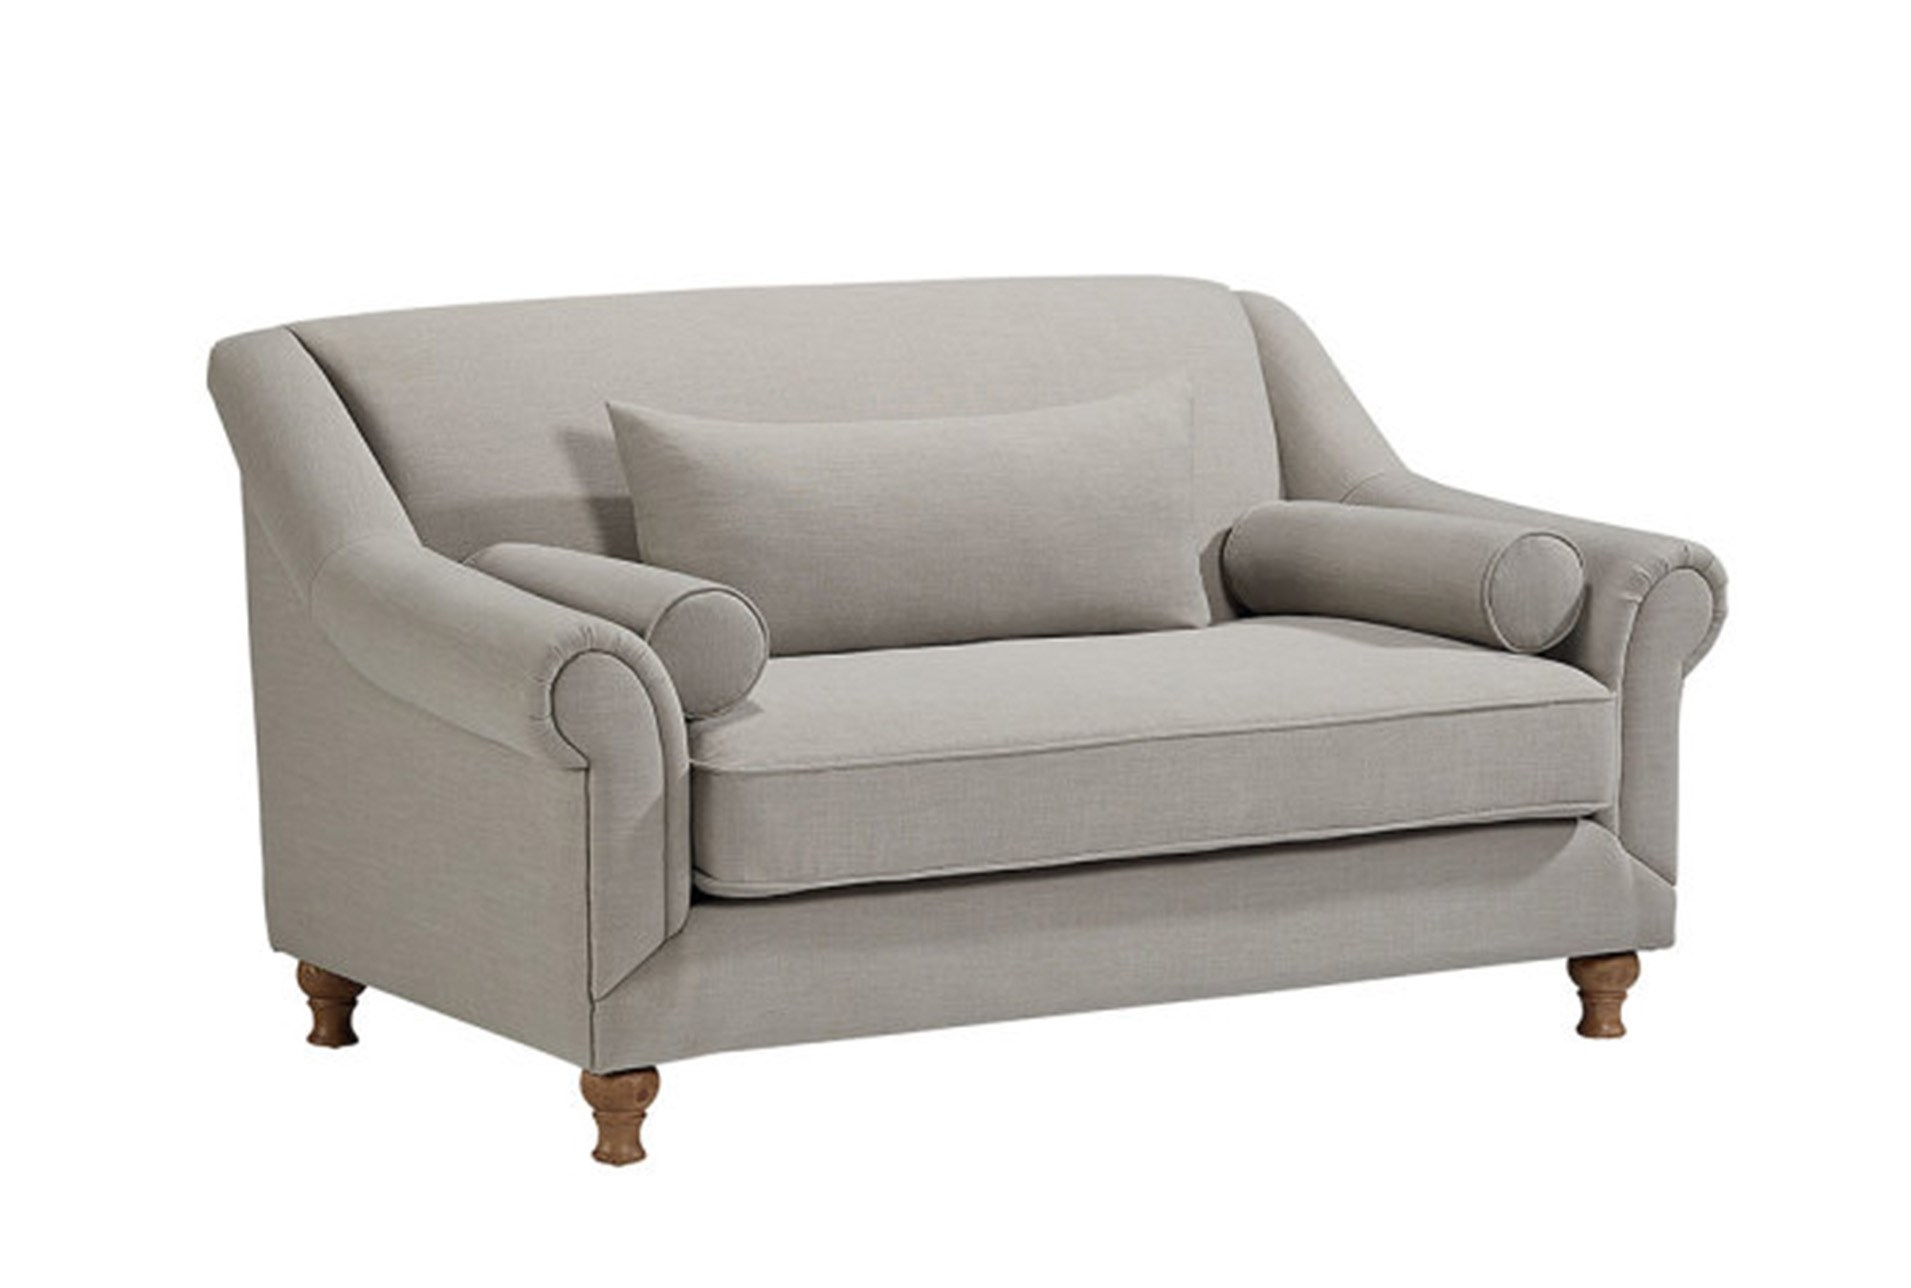 Magnolia Home Rose Hill Loveseat By Joanna Gaines